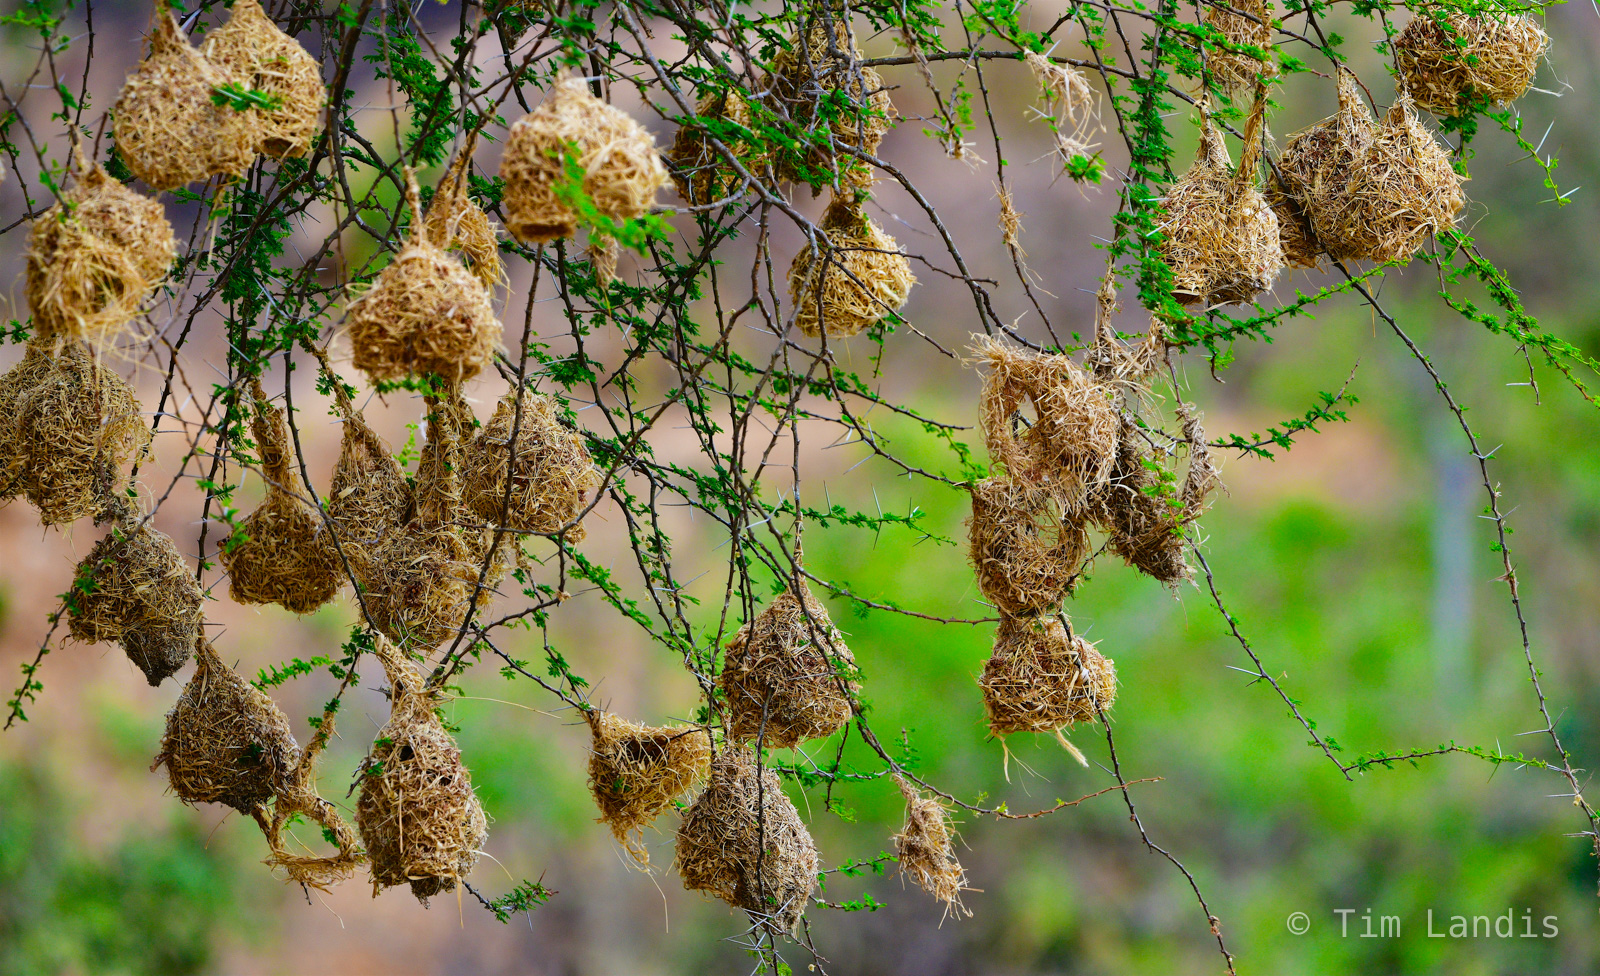 Weaver finches nests, nests in an acacia tree, photo